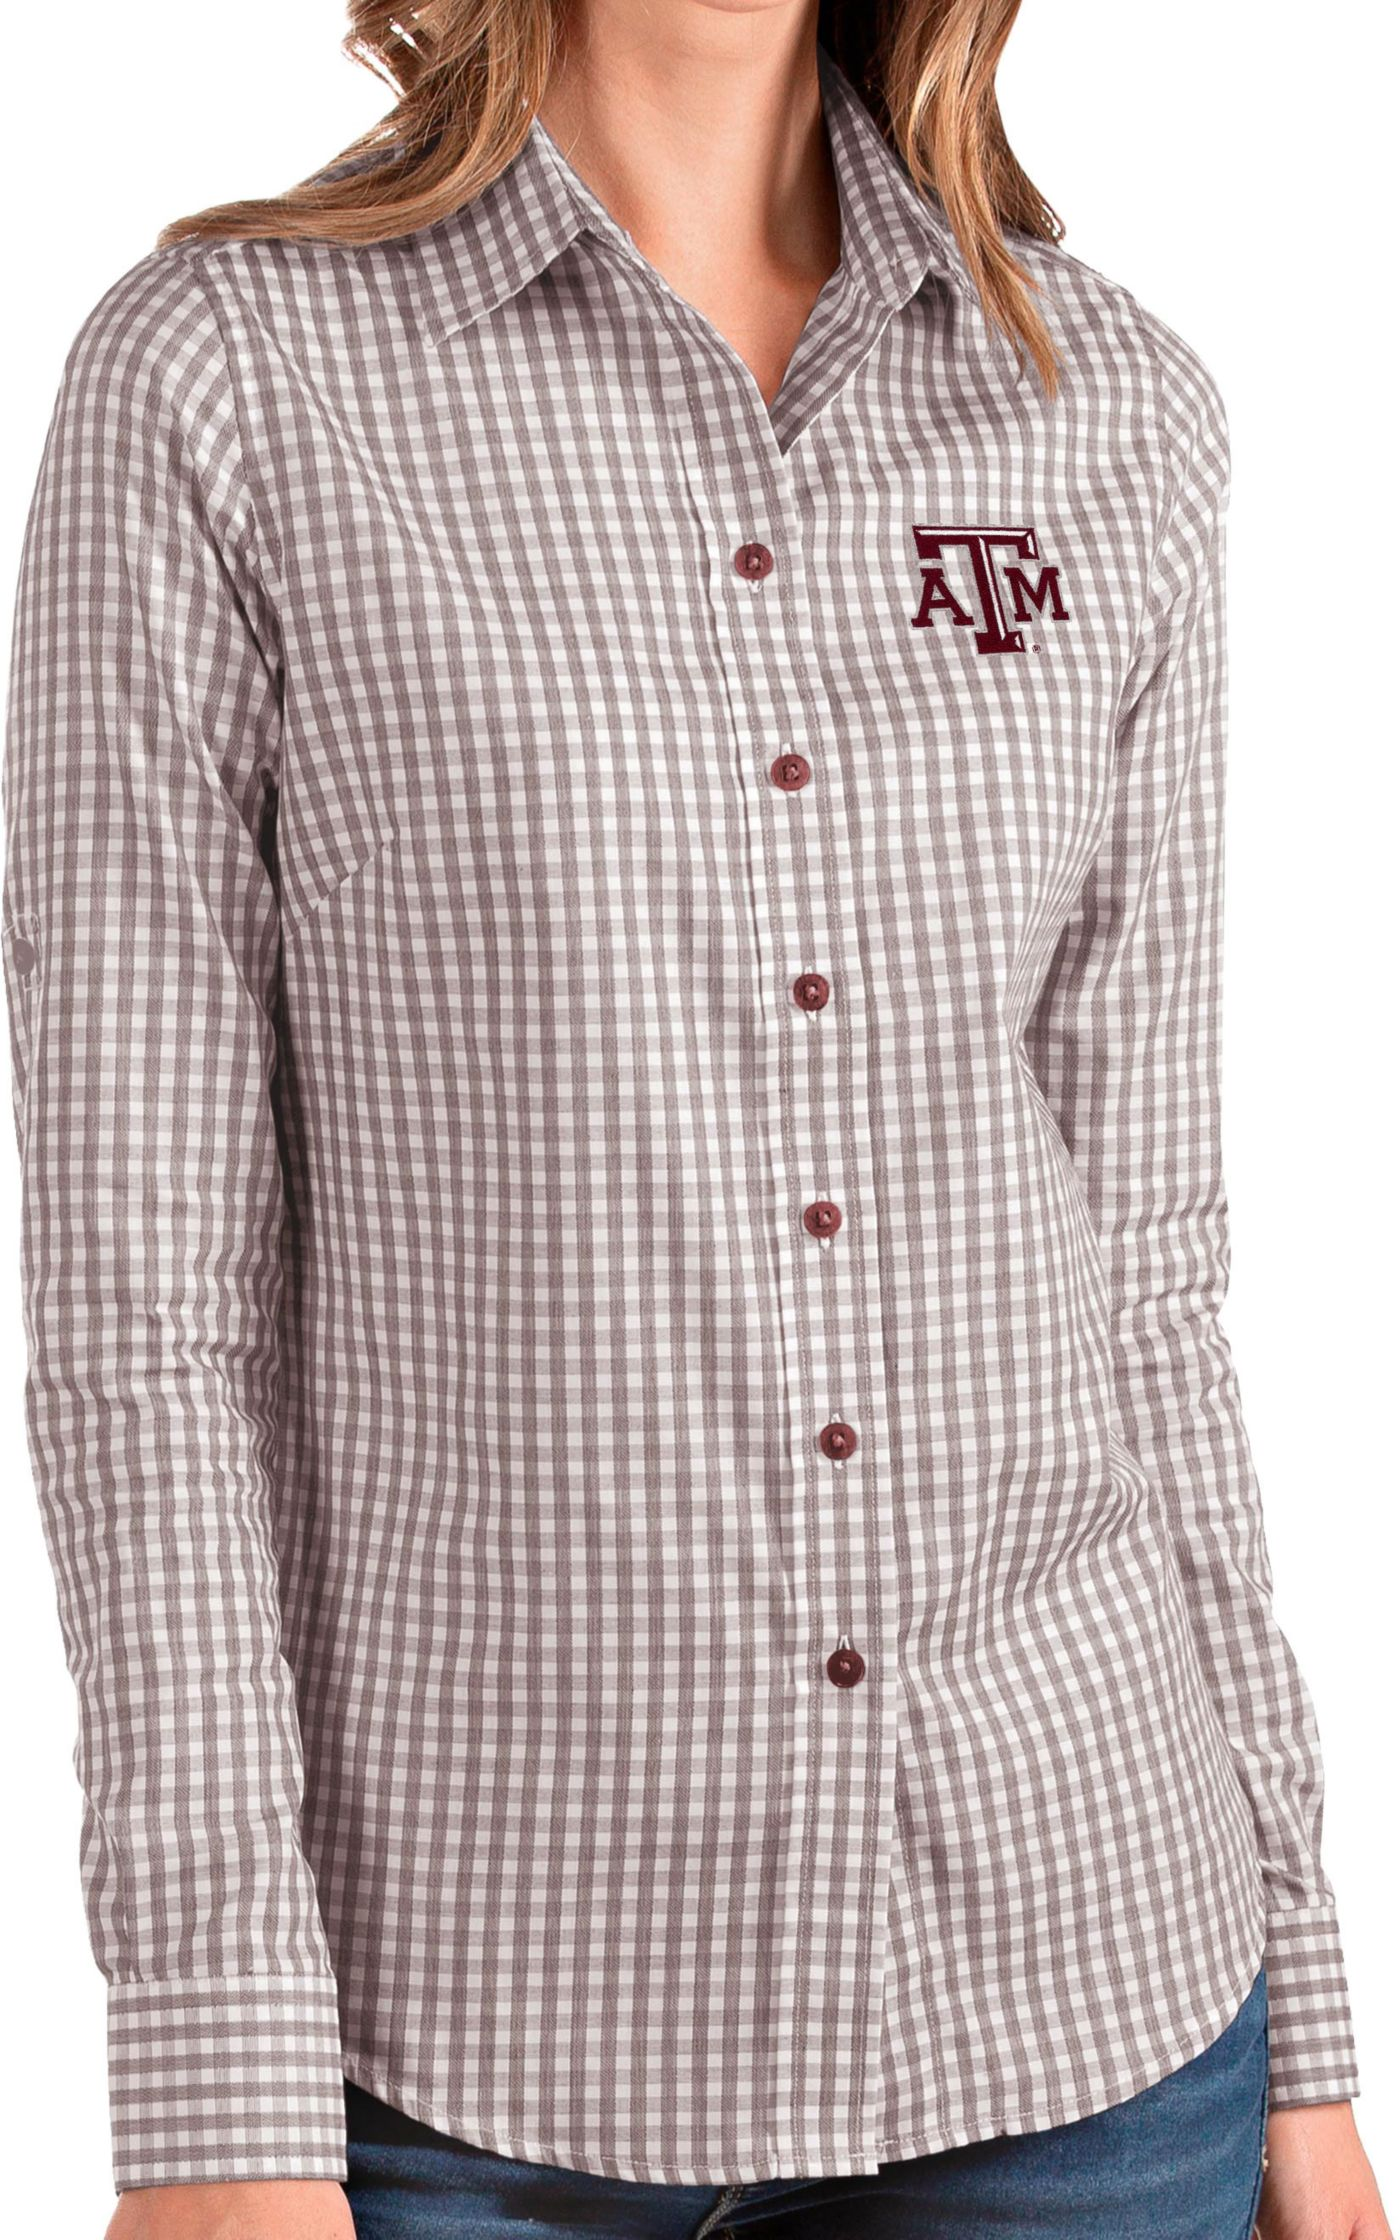 Antigua Women's Texas A&M Aggies Maroon Structure Button Down Long Sleeve Shirt